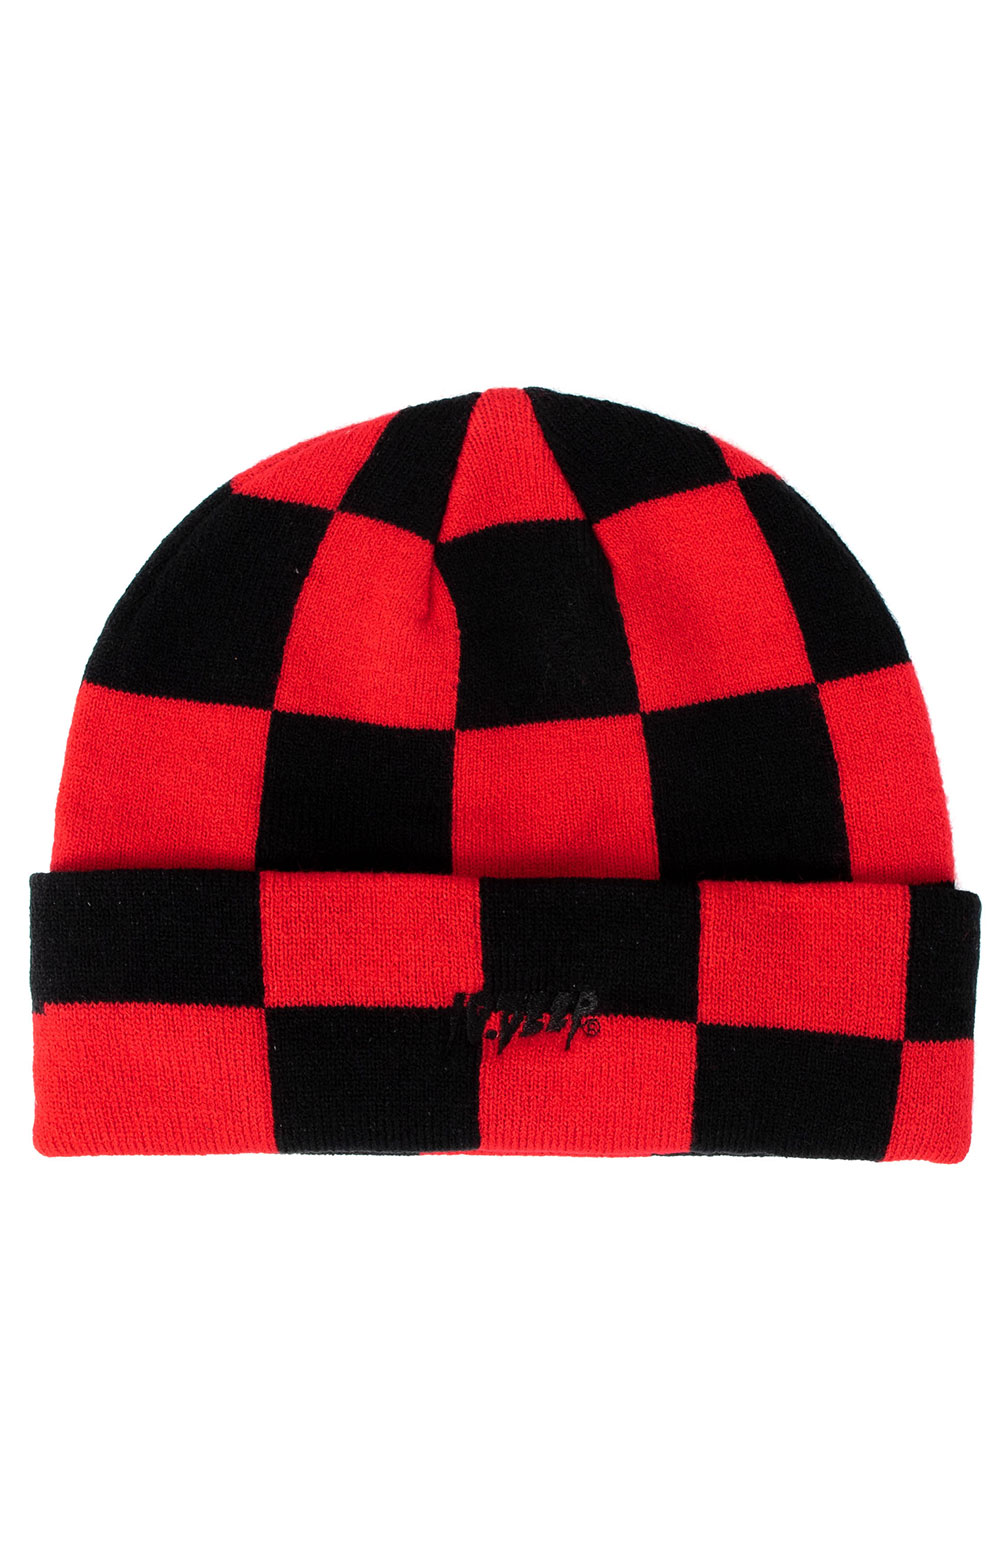 Sound & Fury Beanie - Red